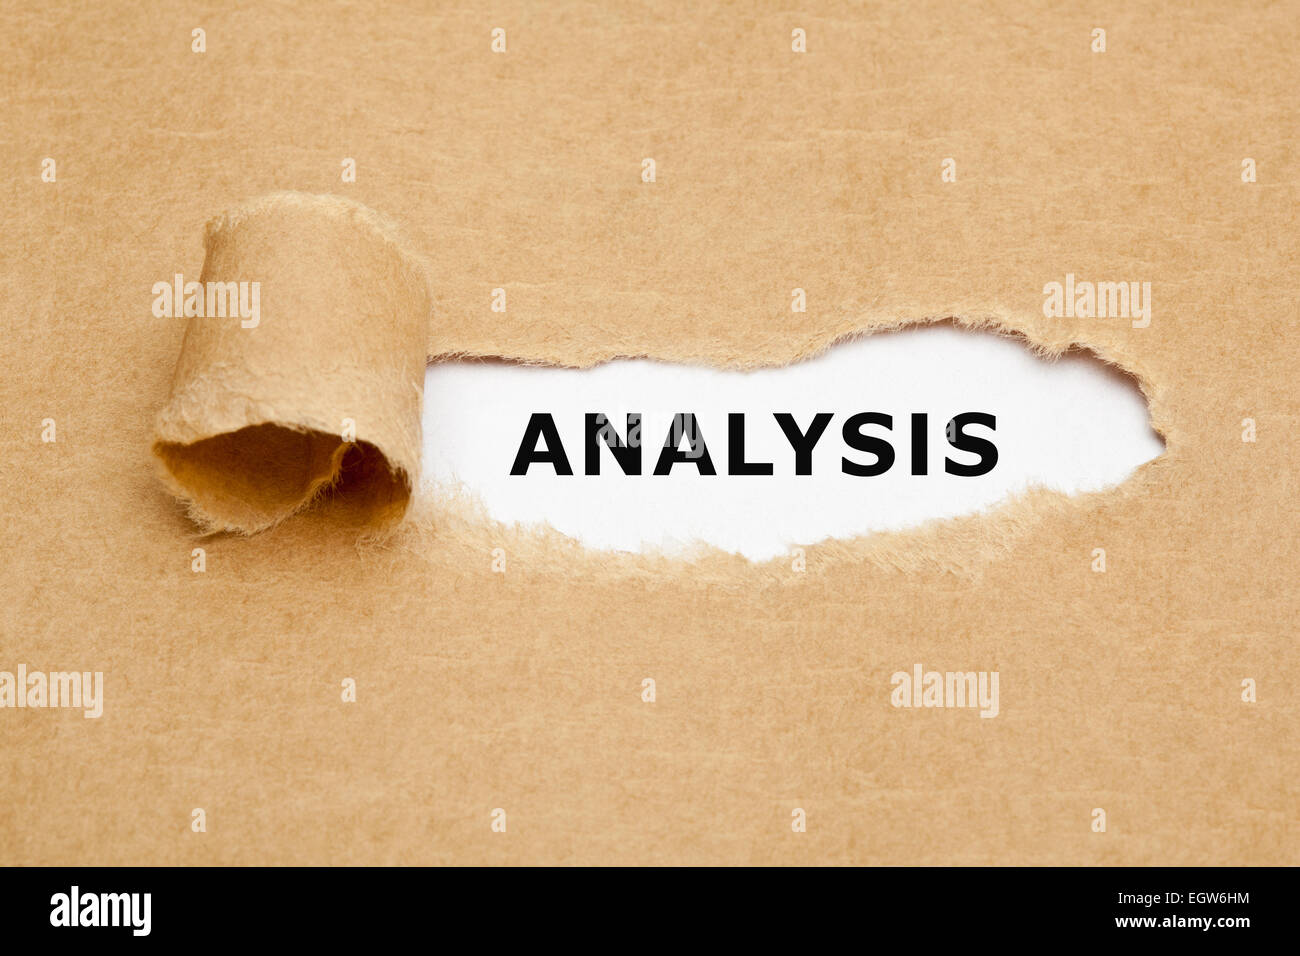 Analysis appearing behind torn brown paper. Stock Photo